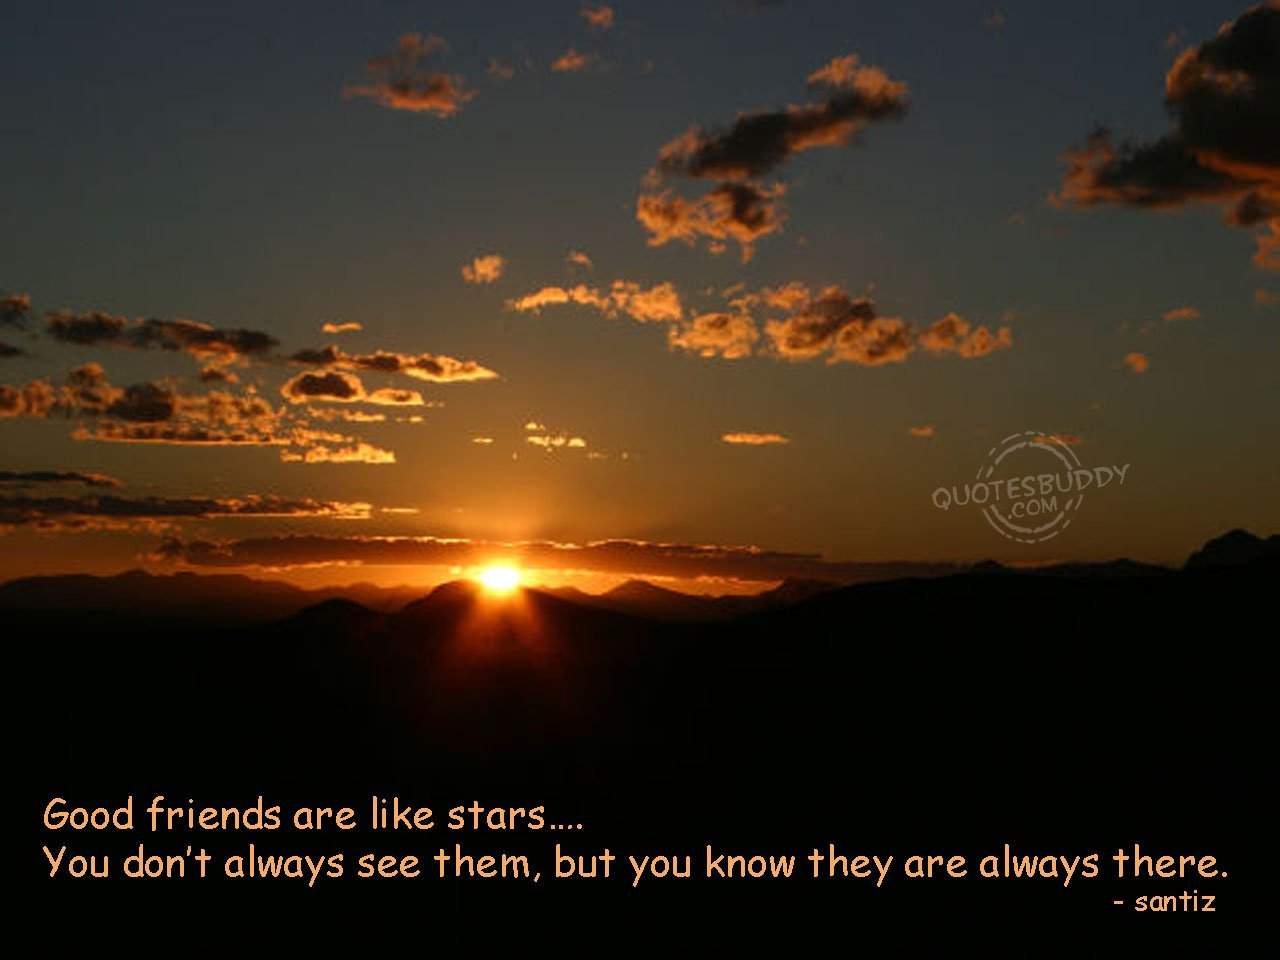 Best Friend Graphic Quotes Wallpapers 4 1280x960